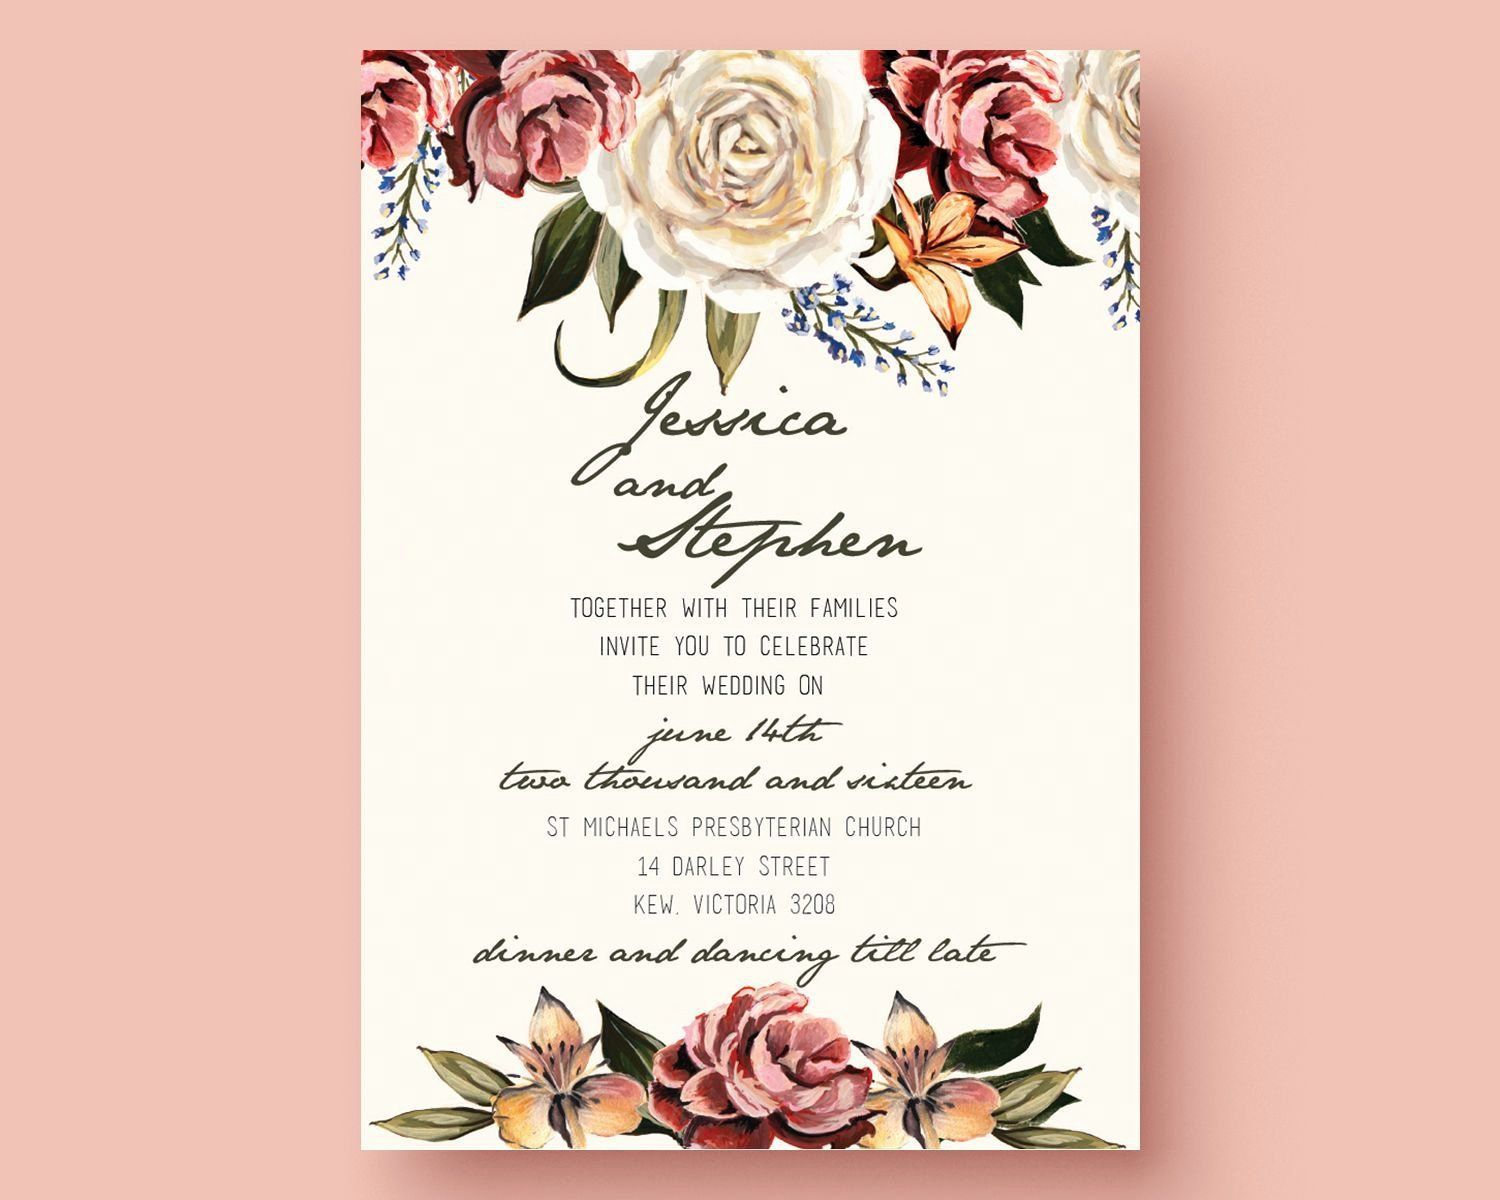 003 Impressive Free Download Wedding Invitation Template For Word Idea  Indian MicrosoftFull